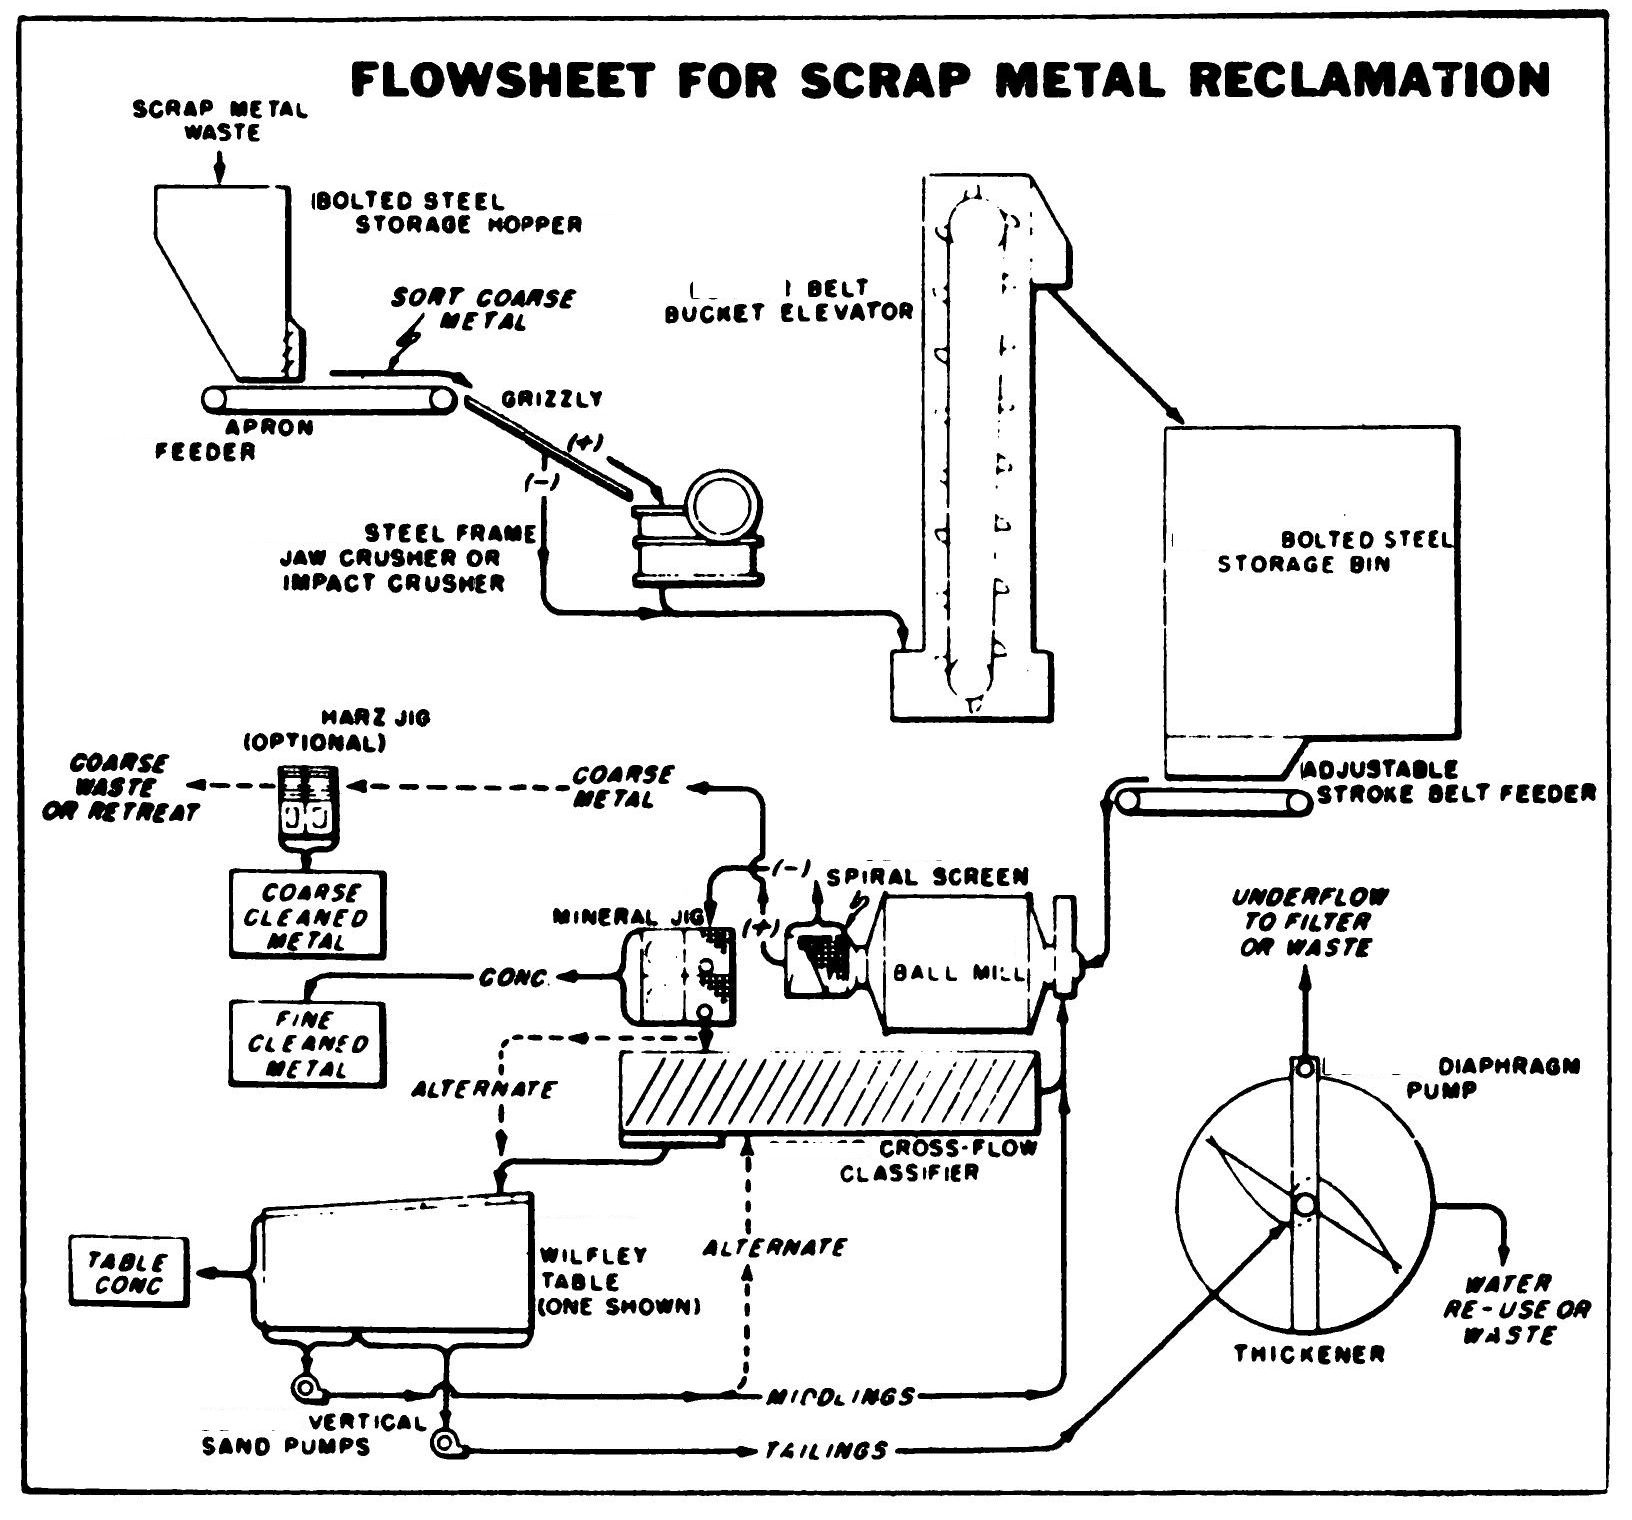 scrap metal recycling process flowsheet